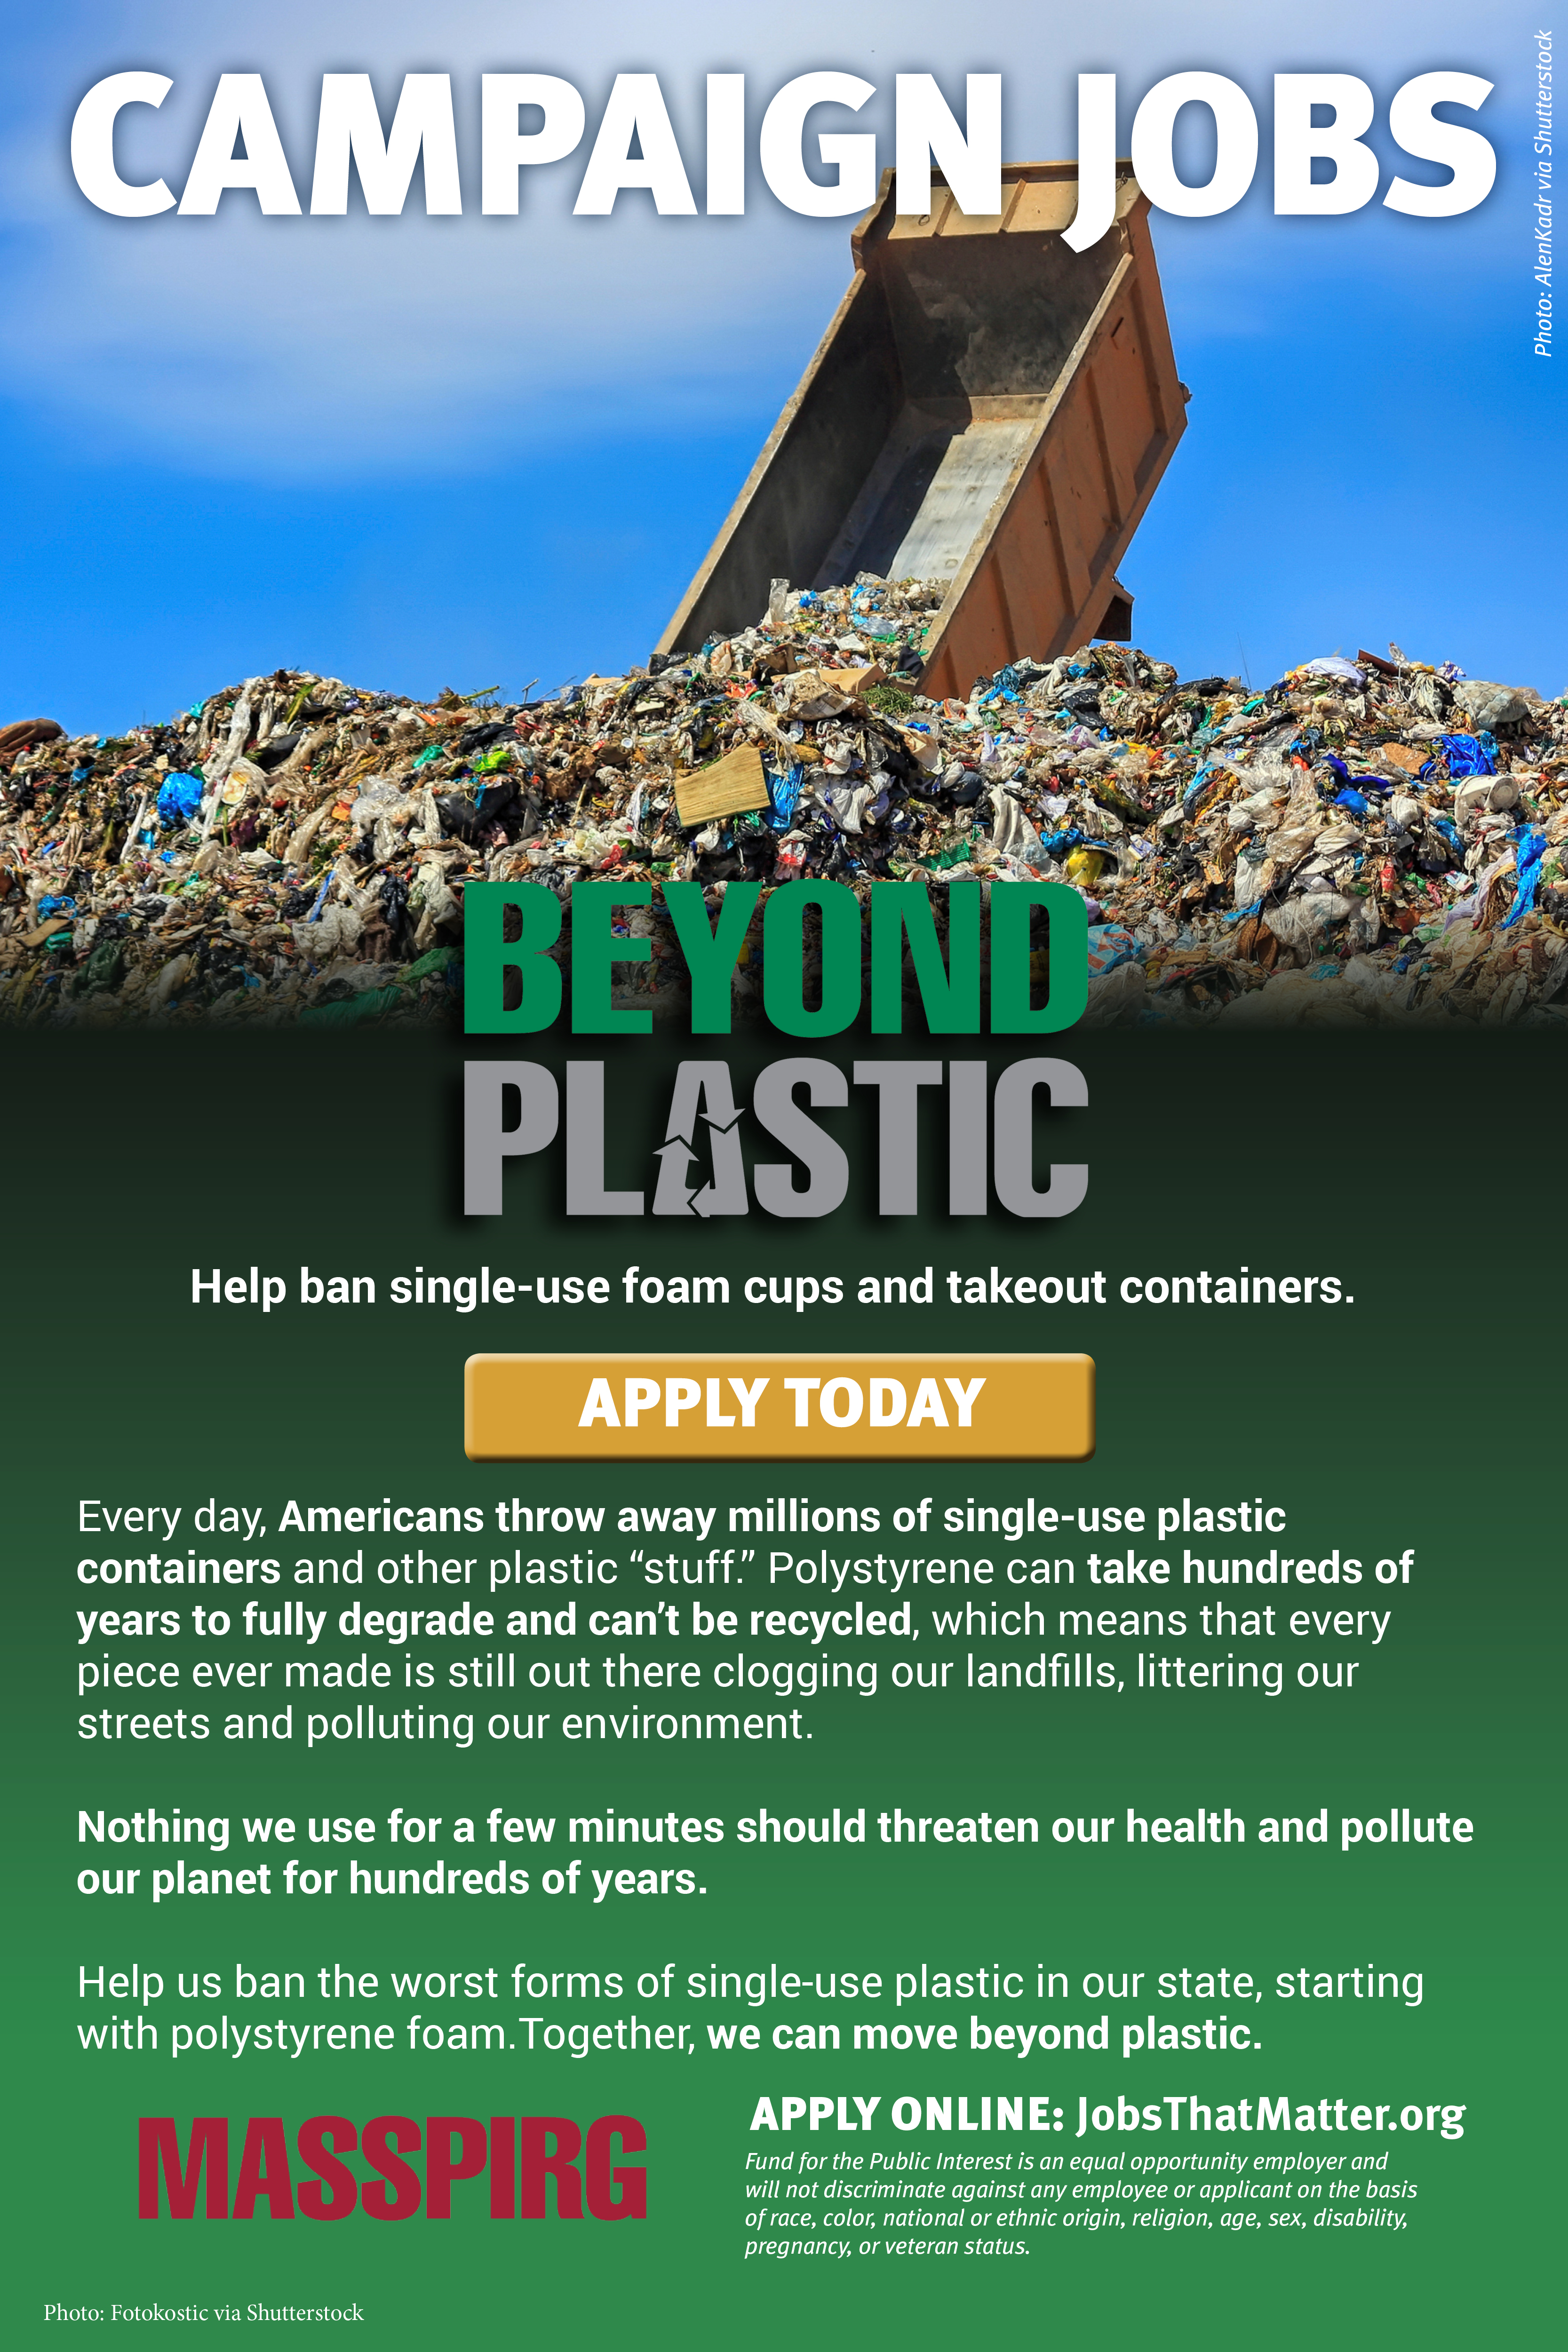 Campaign jobs to reduce plastic pollution. APPLY TODAY.